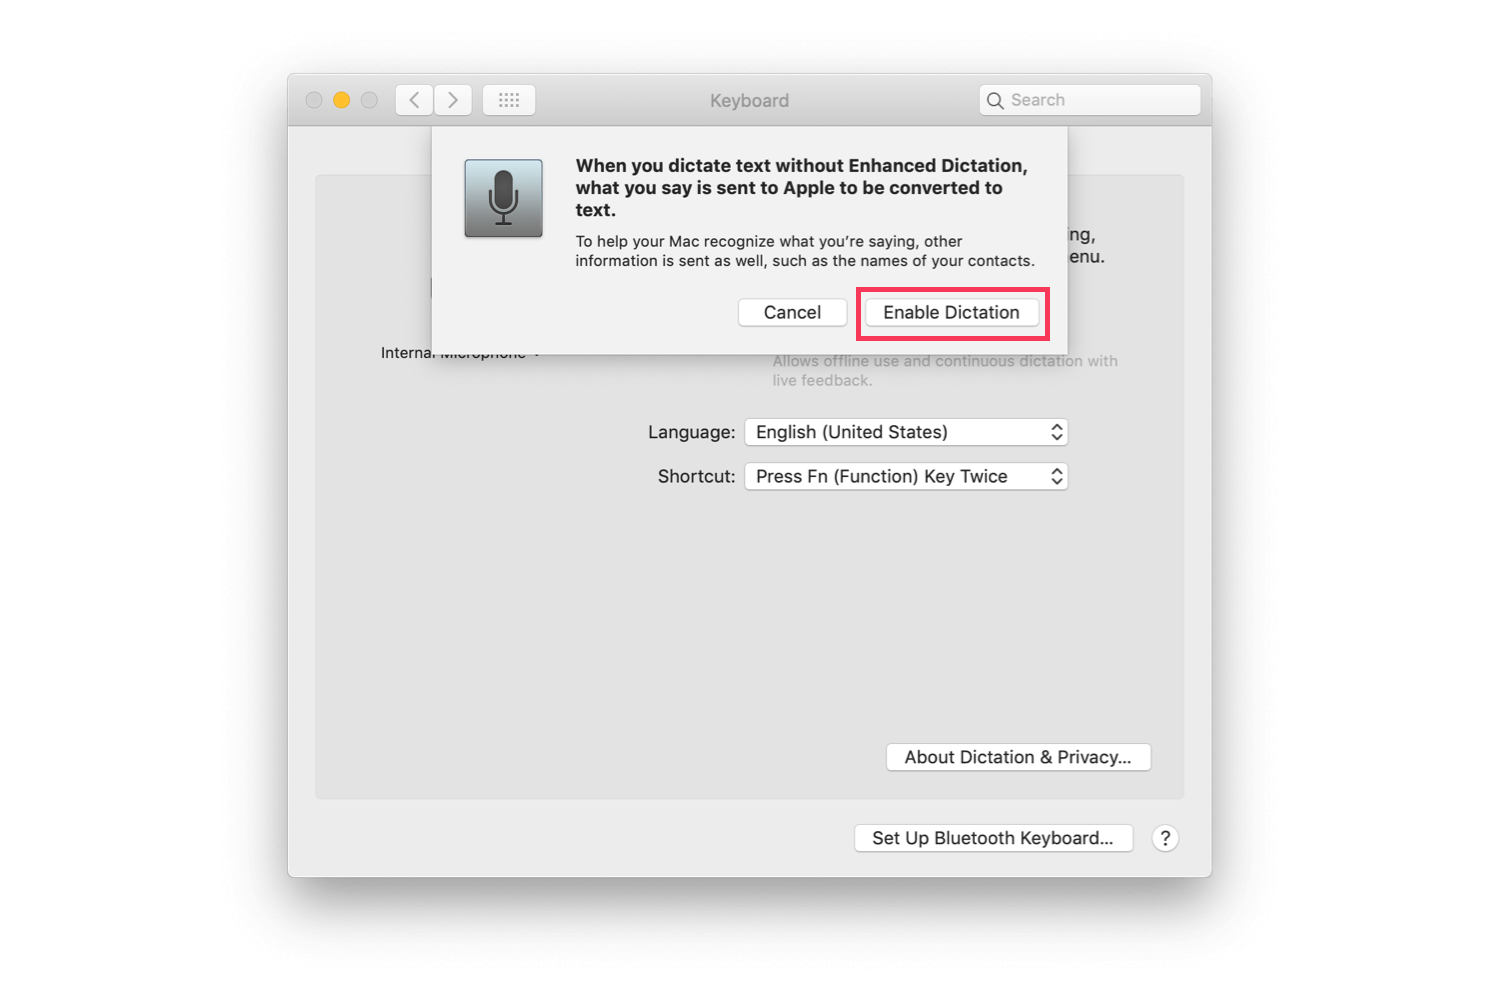 Step 4 for enabling dictation on macOS